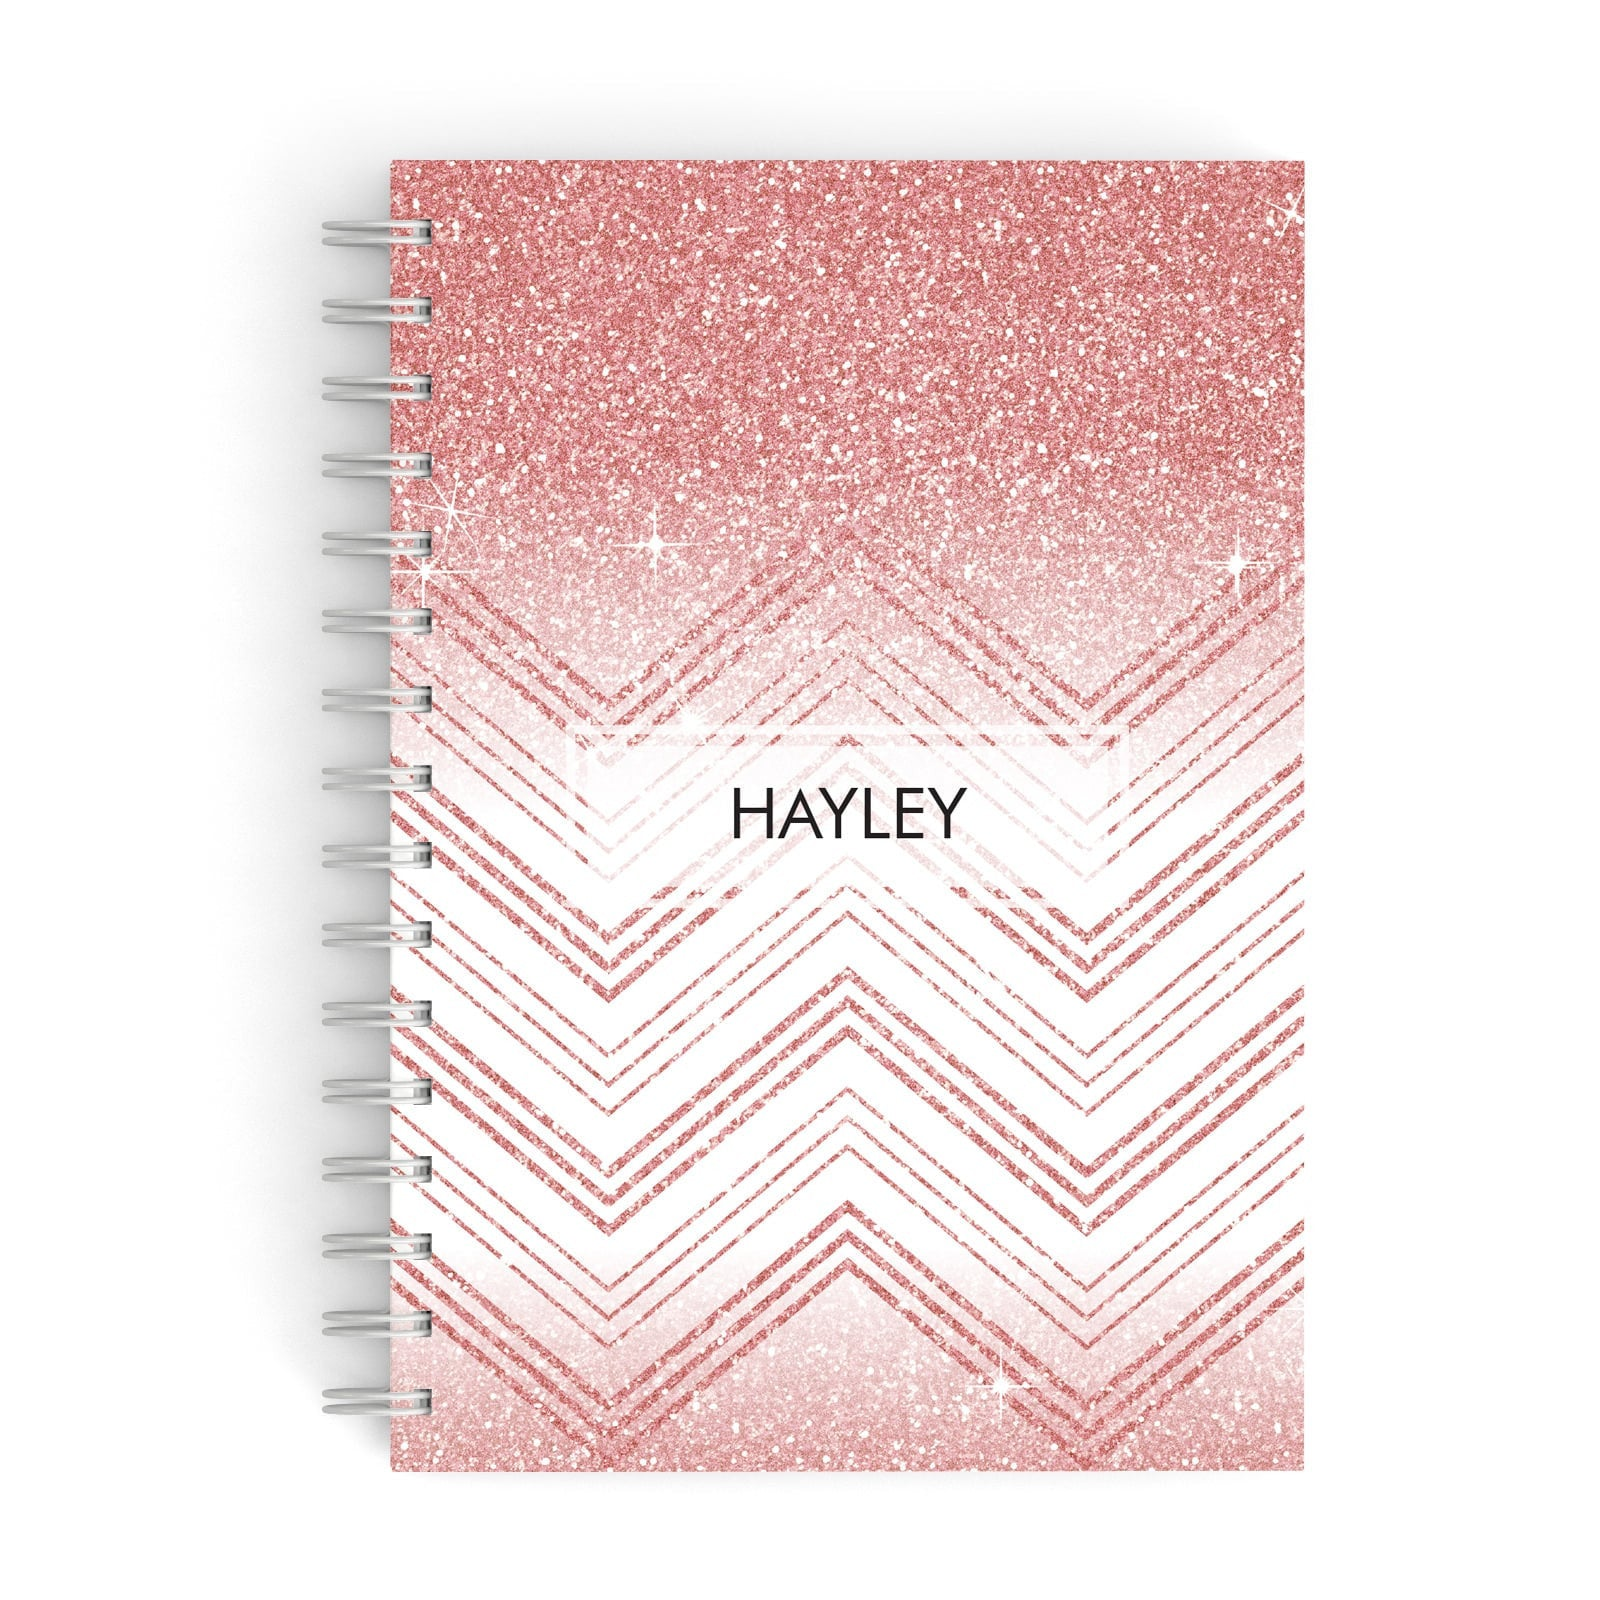 Personalised Faux Glitter Effect Name Initials A5 Hardcover Notebook